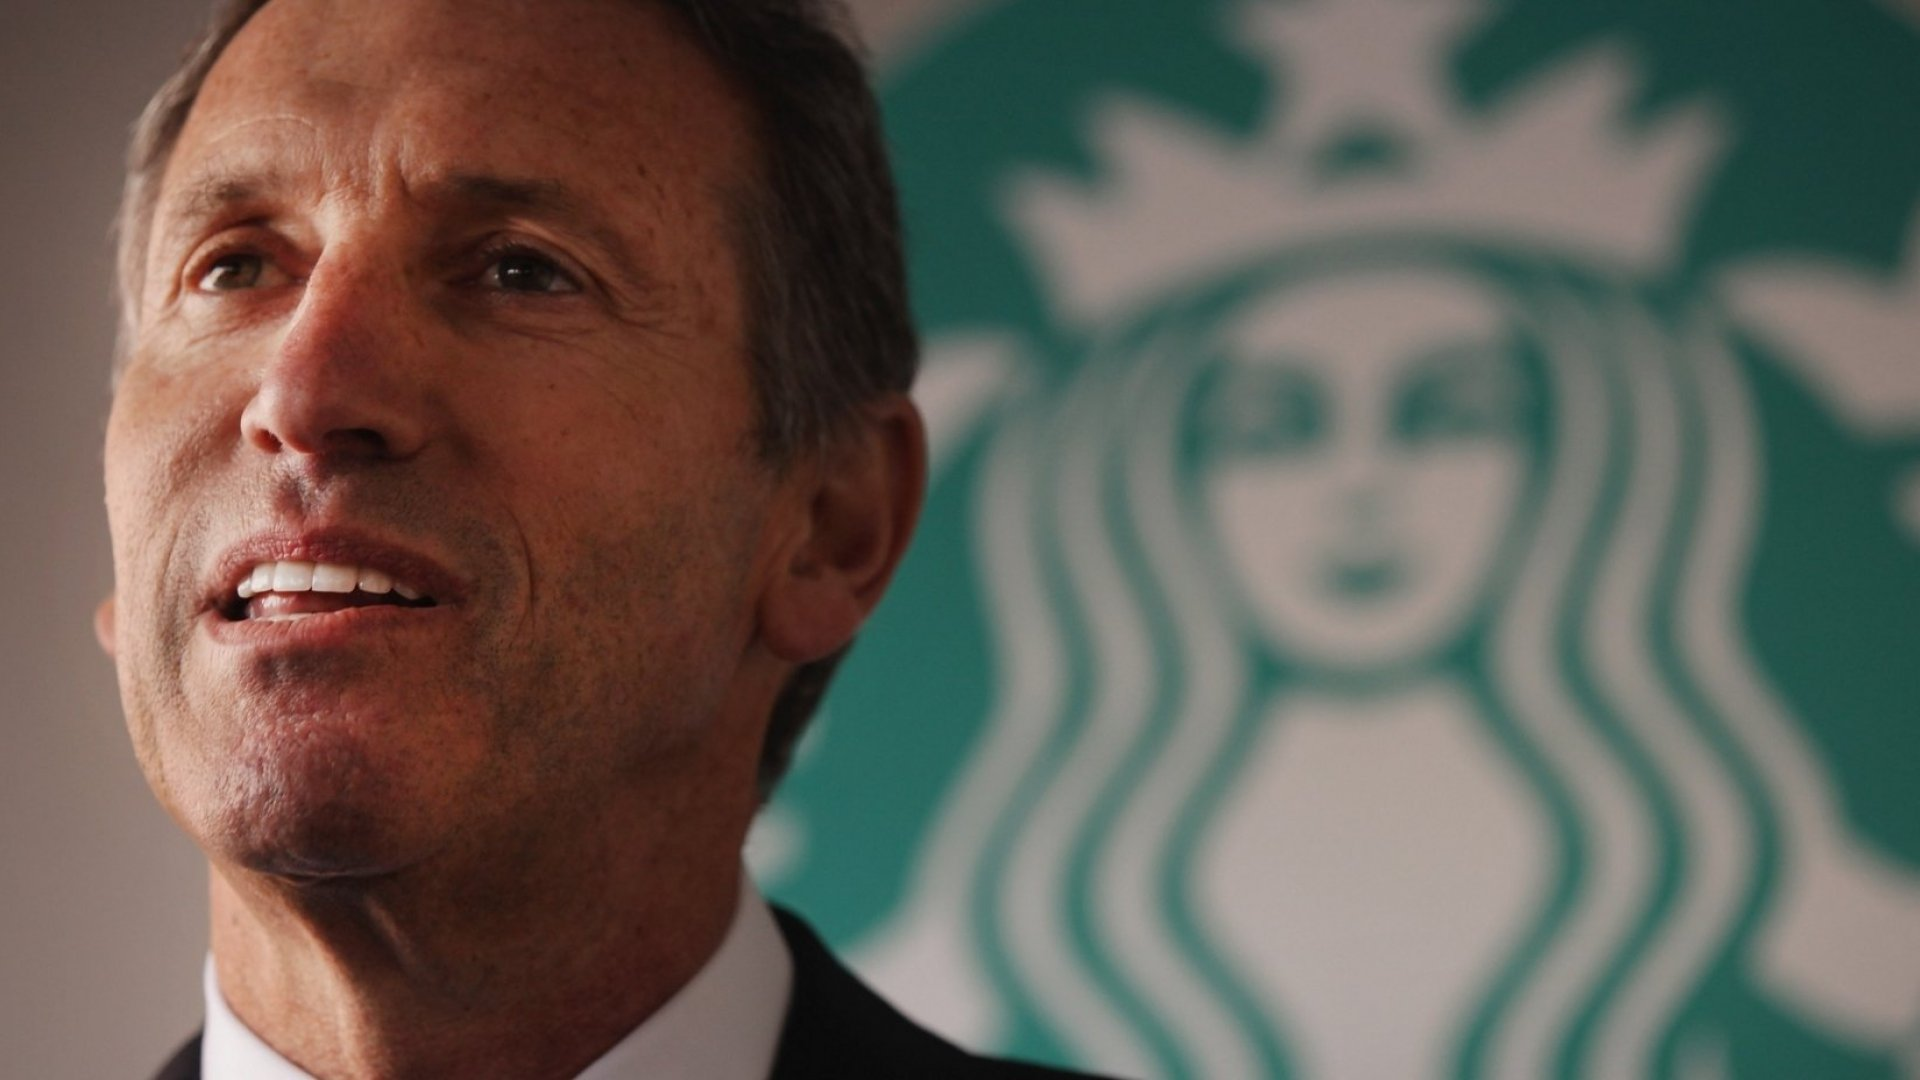 Starbucks Just Made a Bold Non-Coffee Move That Everyone Is Talking About